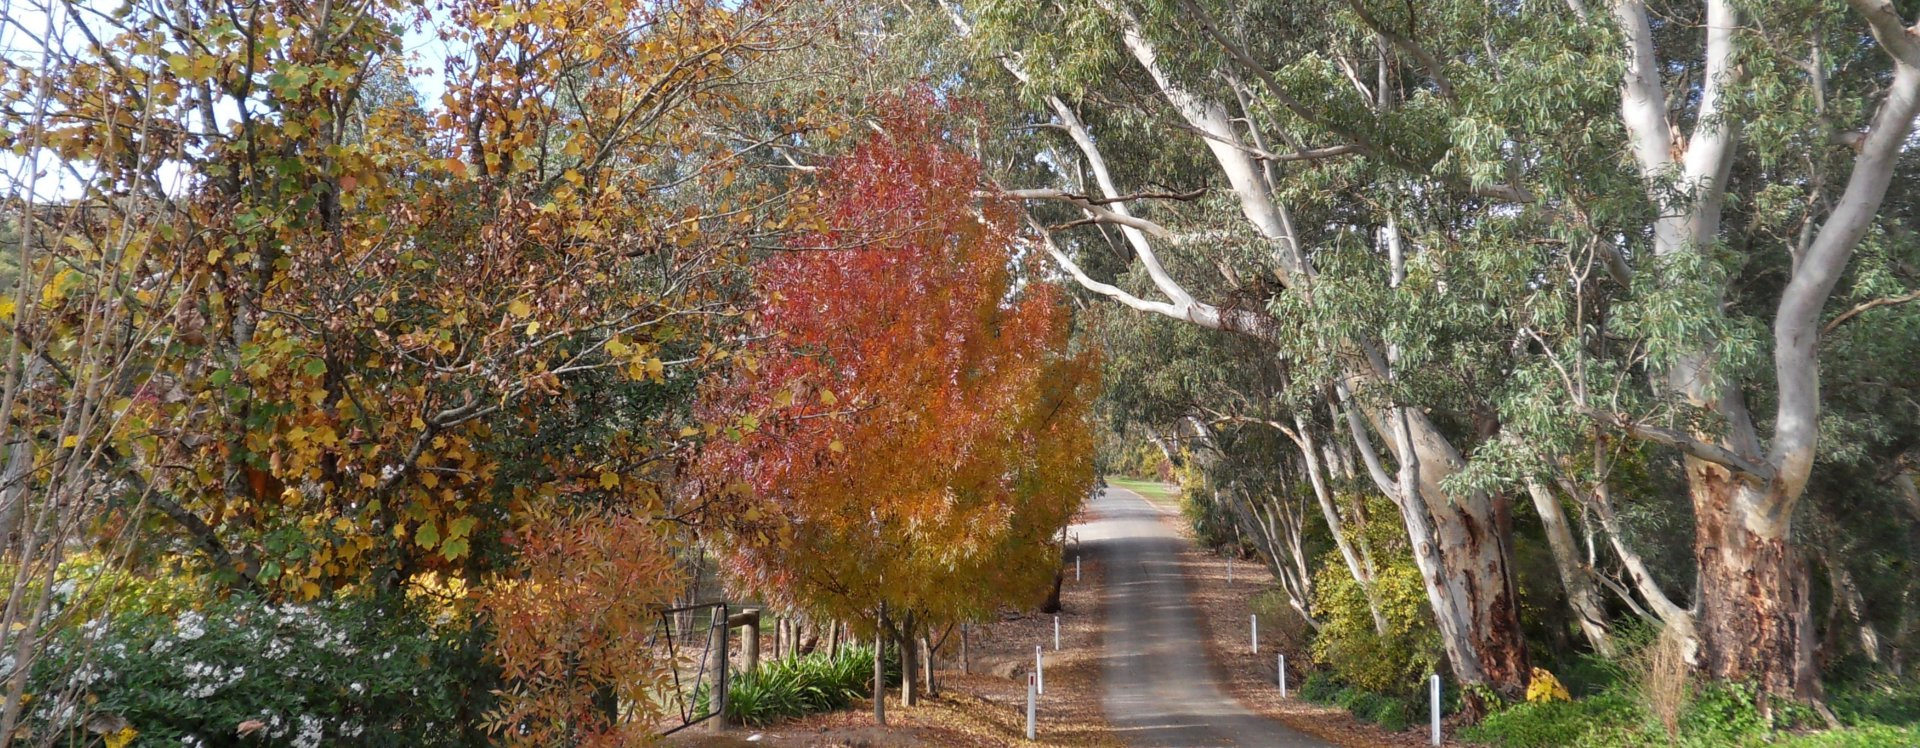 clare-valley-experiences-home-country-drive